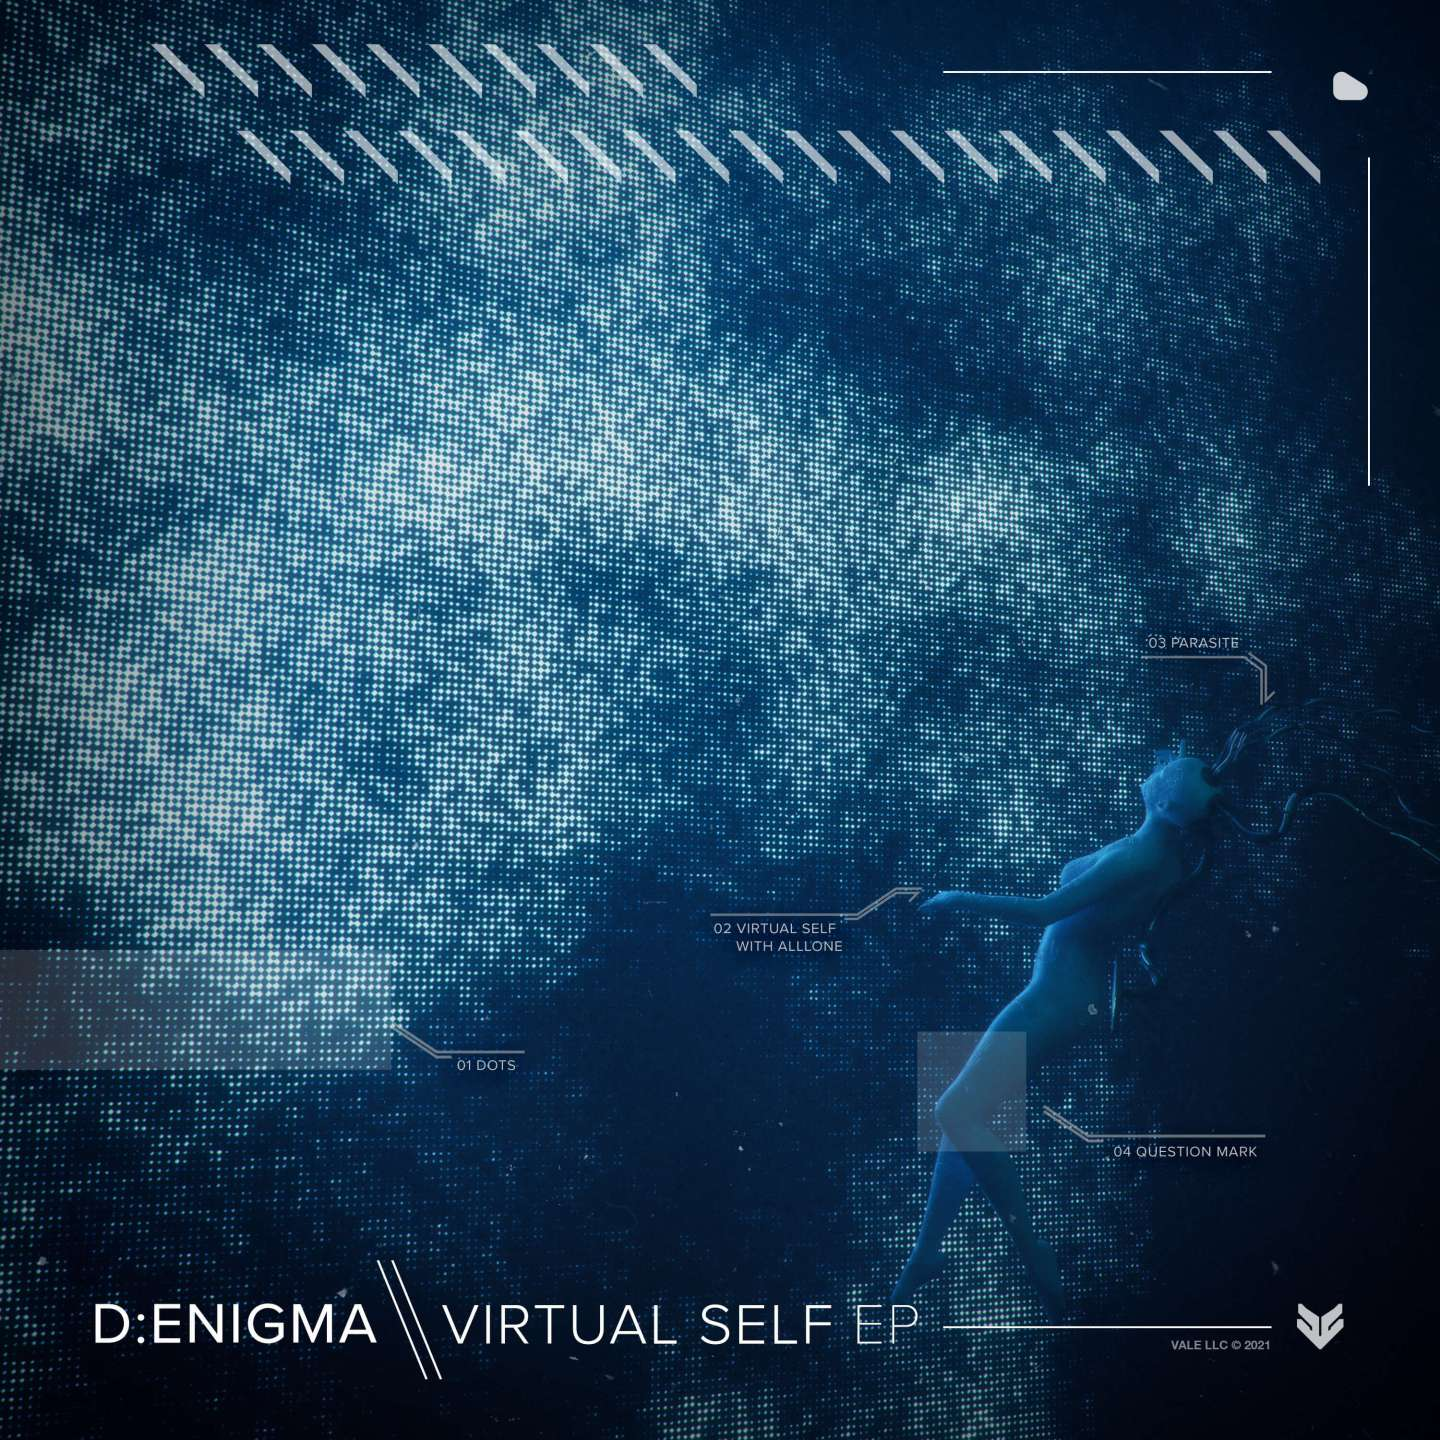 d:enigma virtual self ep